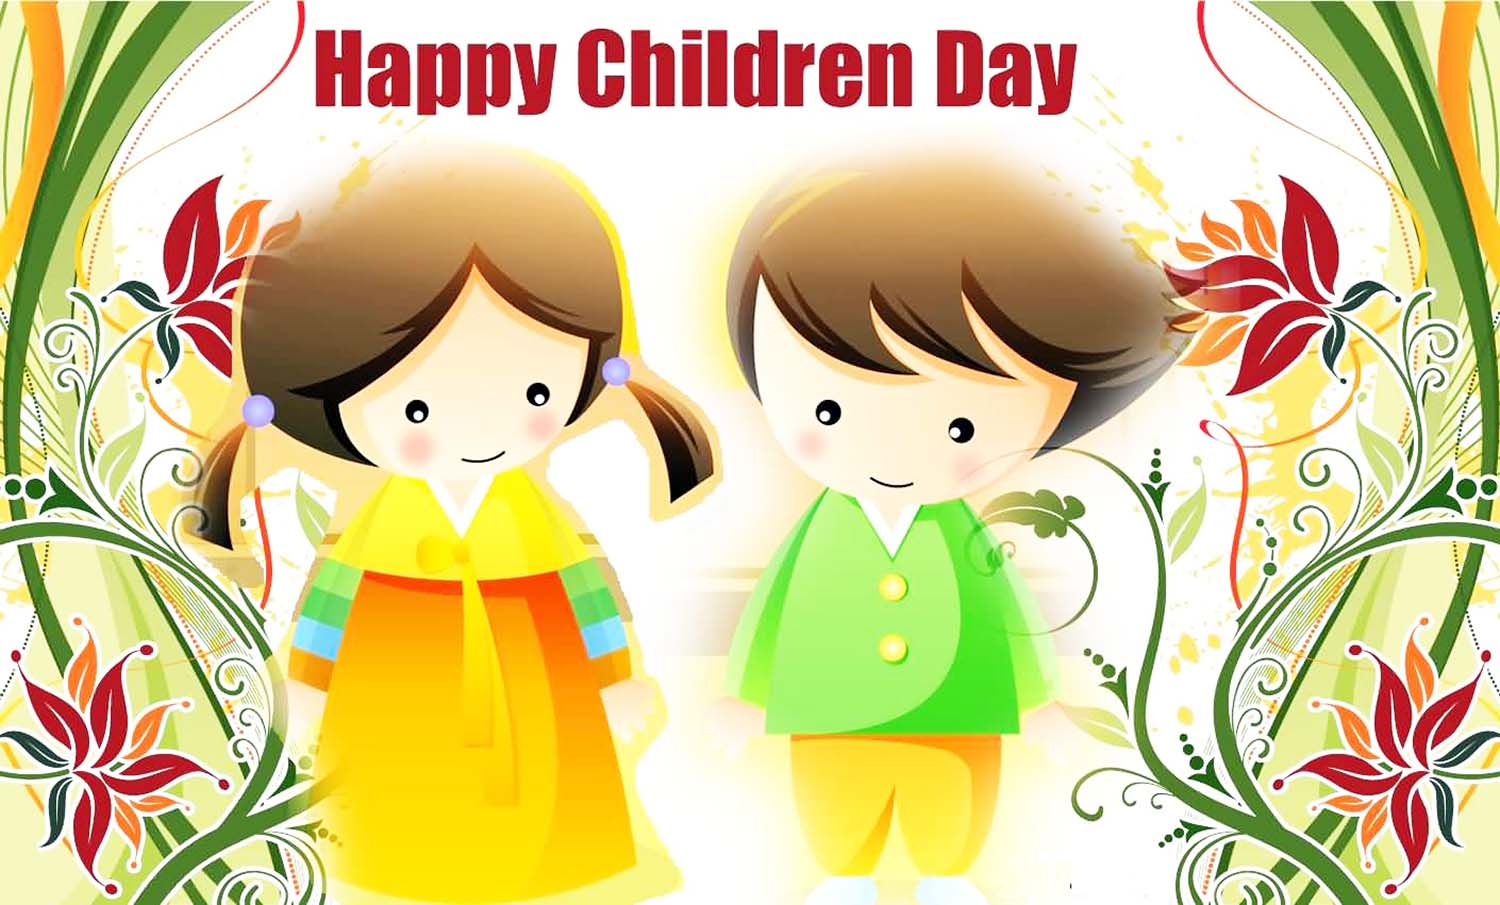 happy children's day images hd